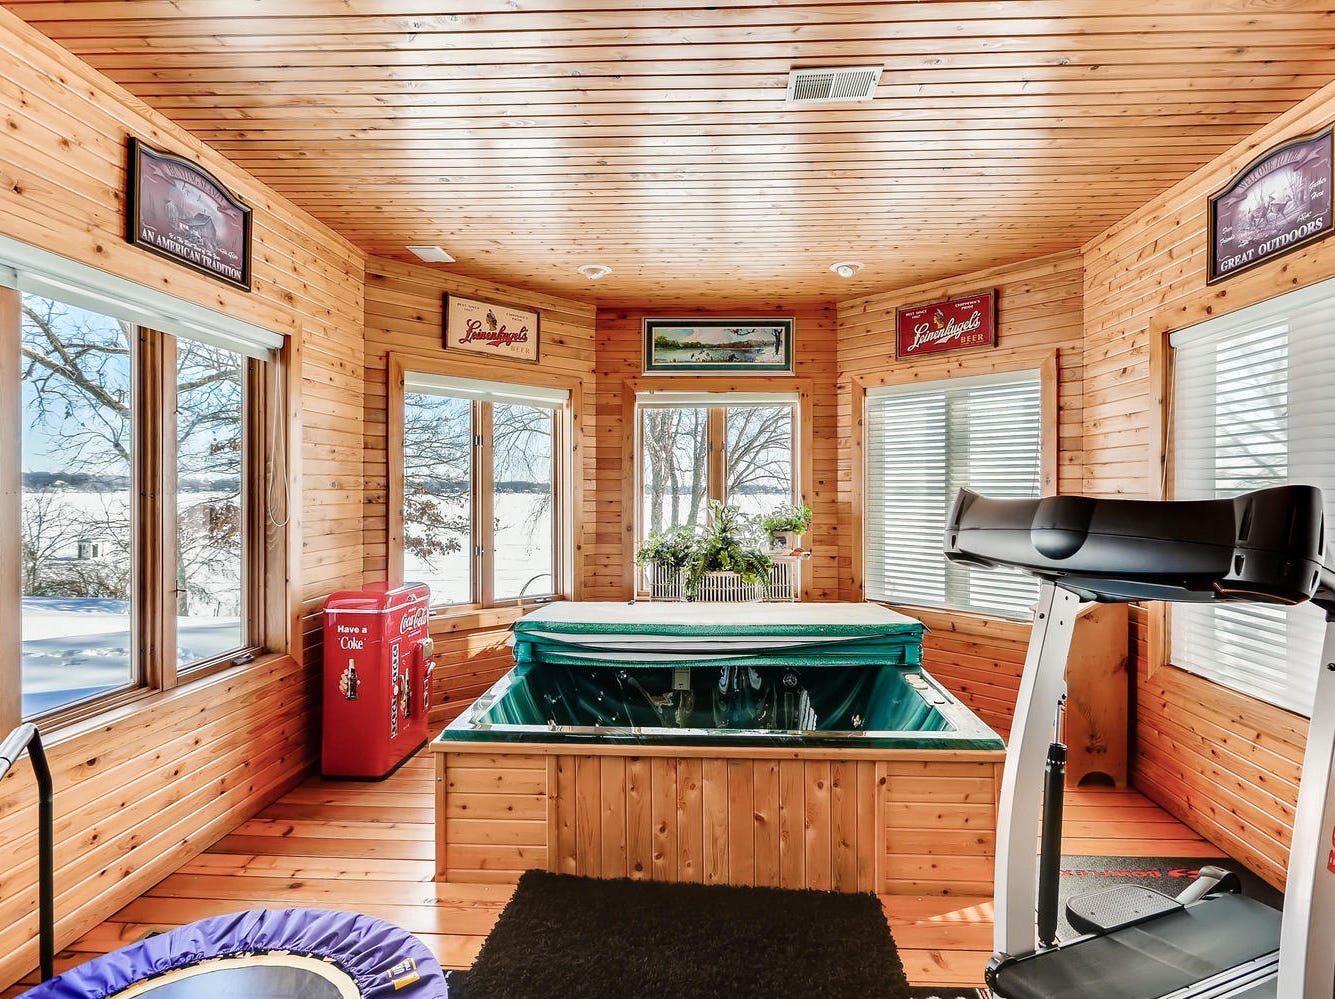 A hot tub room sits lakeside and mimics the sunroom on the main level in that it offers complete waterfront views.